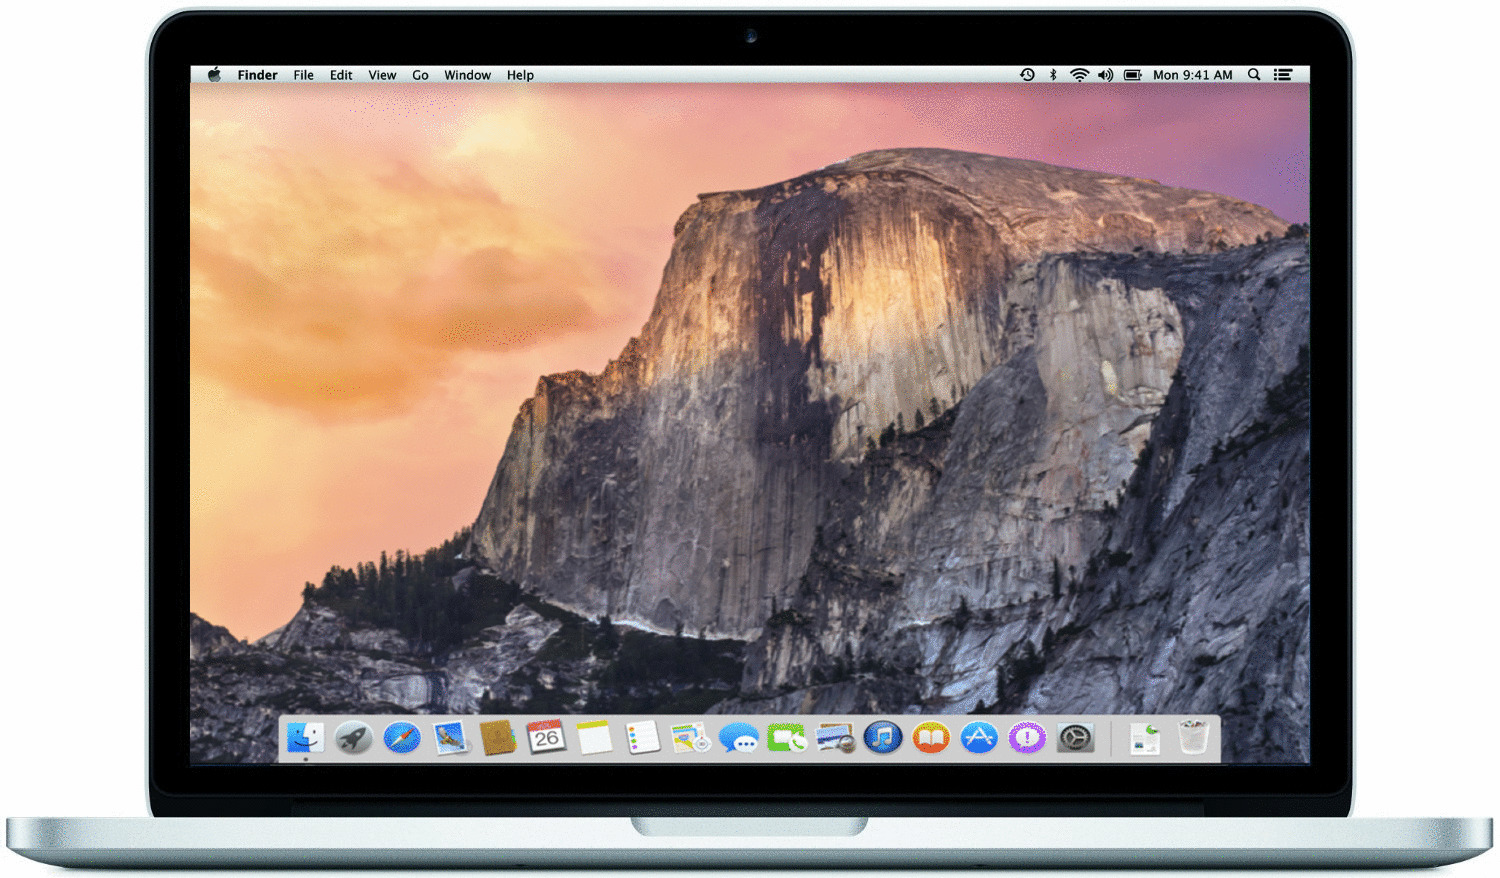 Apple MacBook Pro 13.3 (Retina Display) 2.7 GHz Intel Core i5 8 GB RAM 128 GB PCIe SSD [Early 2015, englisches Tastaturlayout, QWERTY]